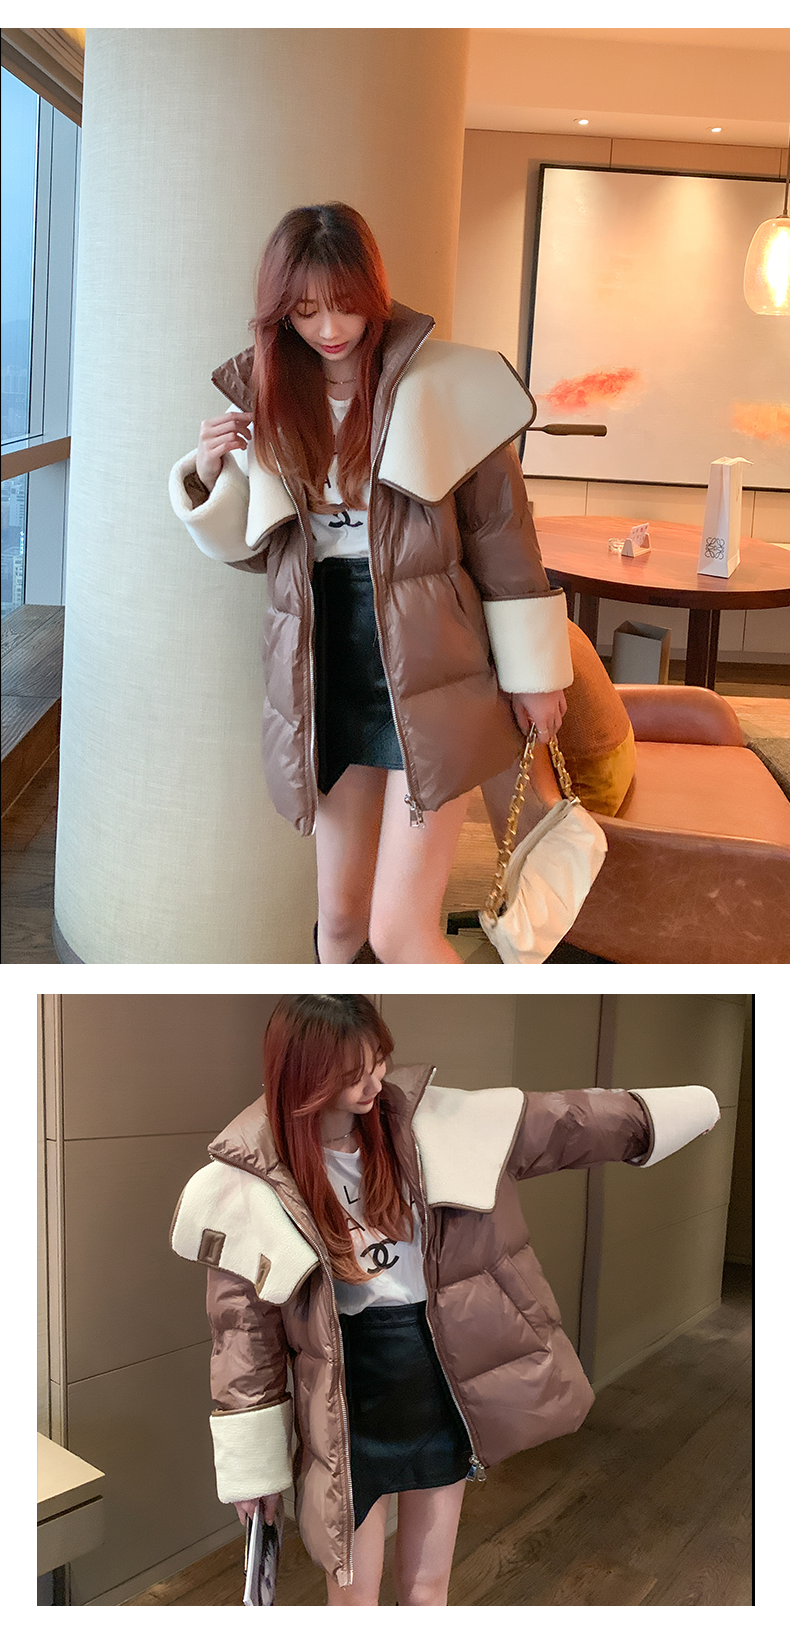 Hb0403e5839964a4084d1331b584e45e1H 2021 winter new down jacket women new fashion mid-length loose and thin lamb hair stitching white duck down long-sleeved jacket